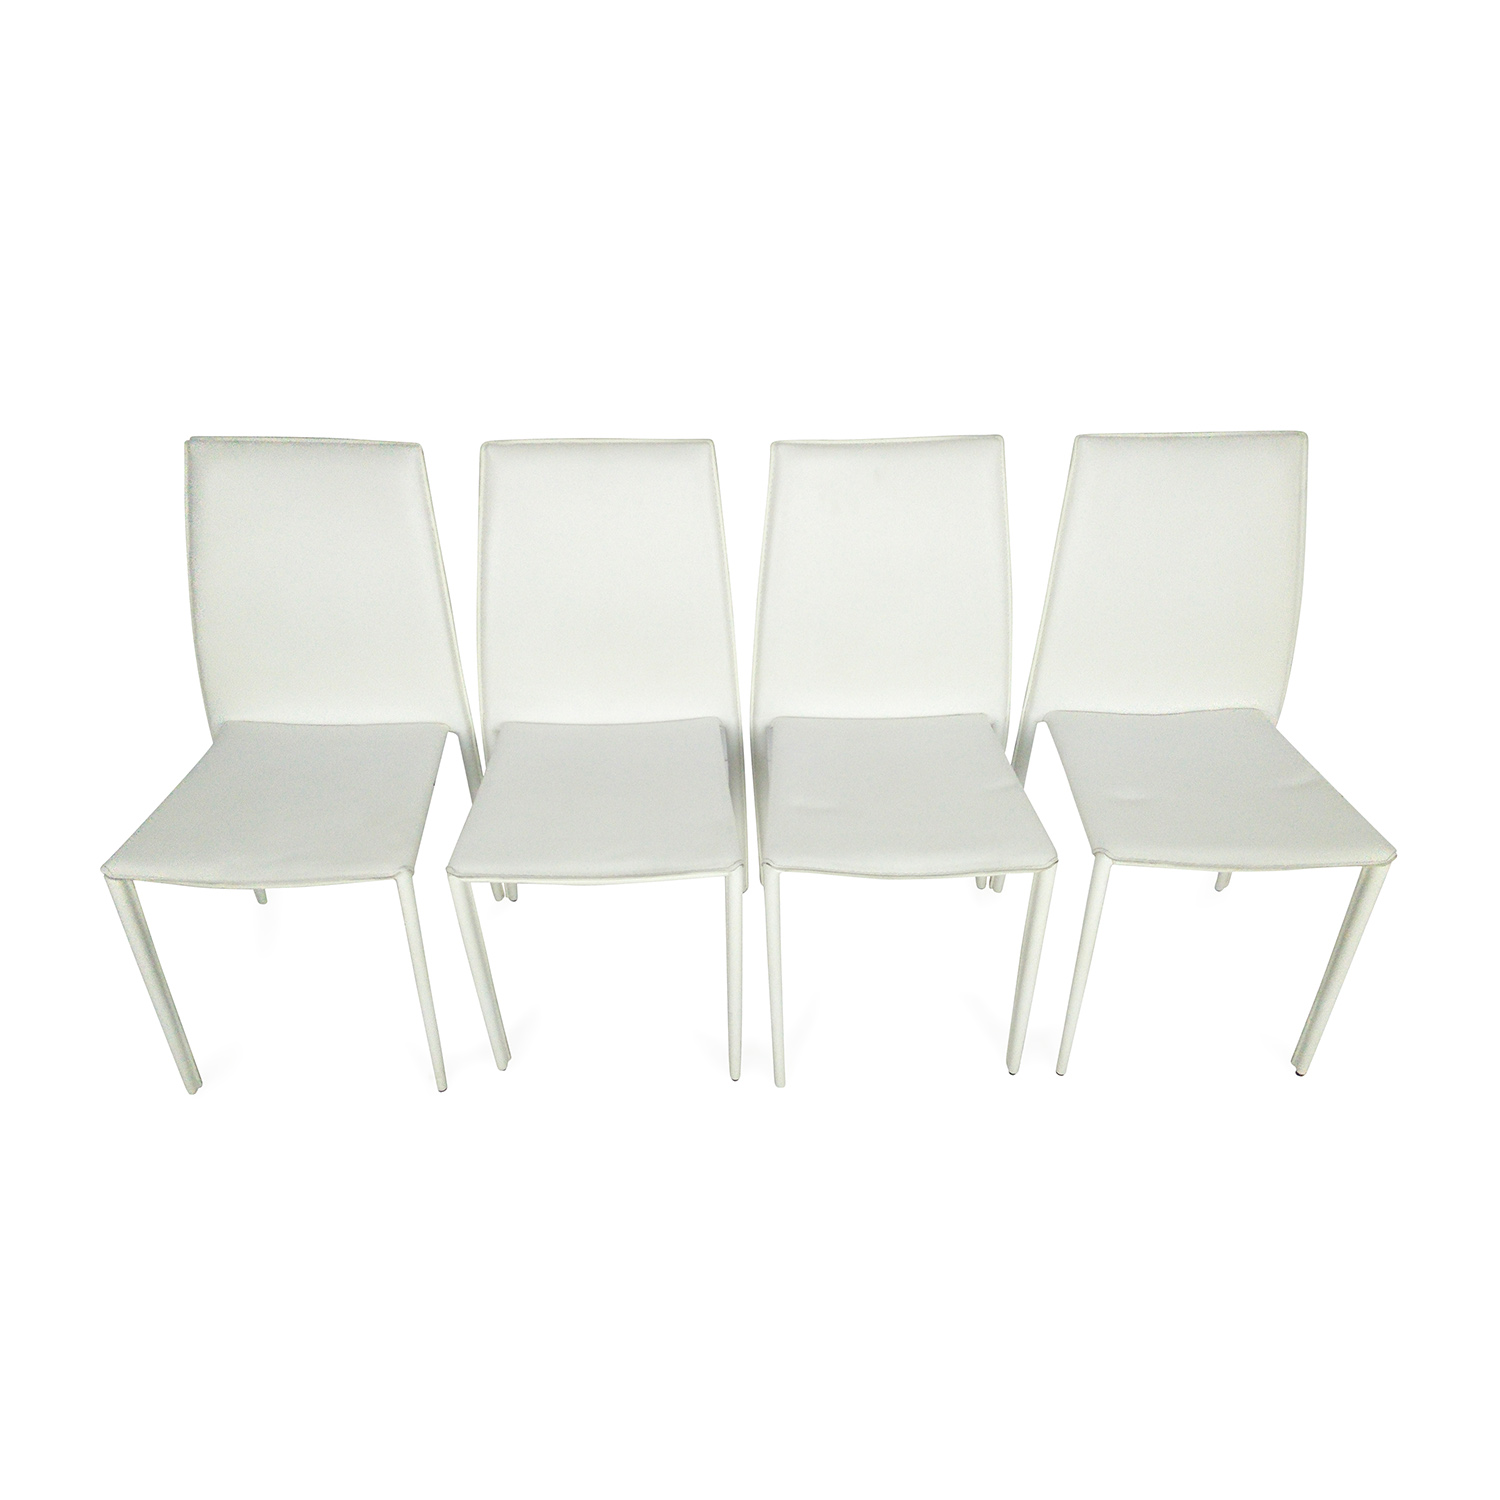 all modern leather dining chairs chair covers and sashes near me 51 off white